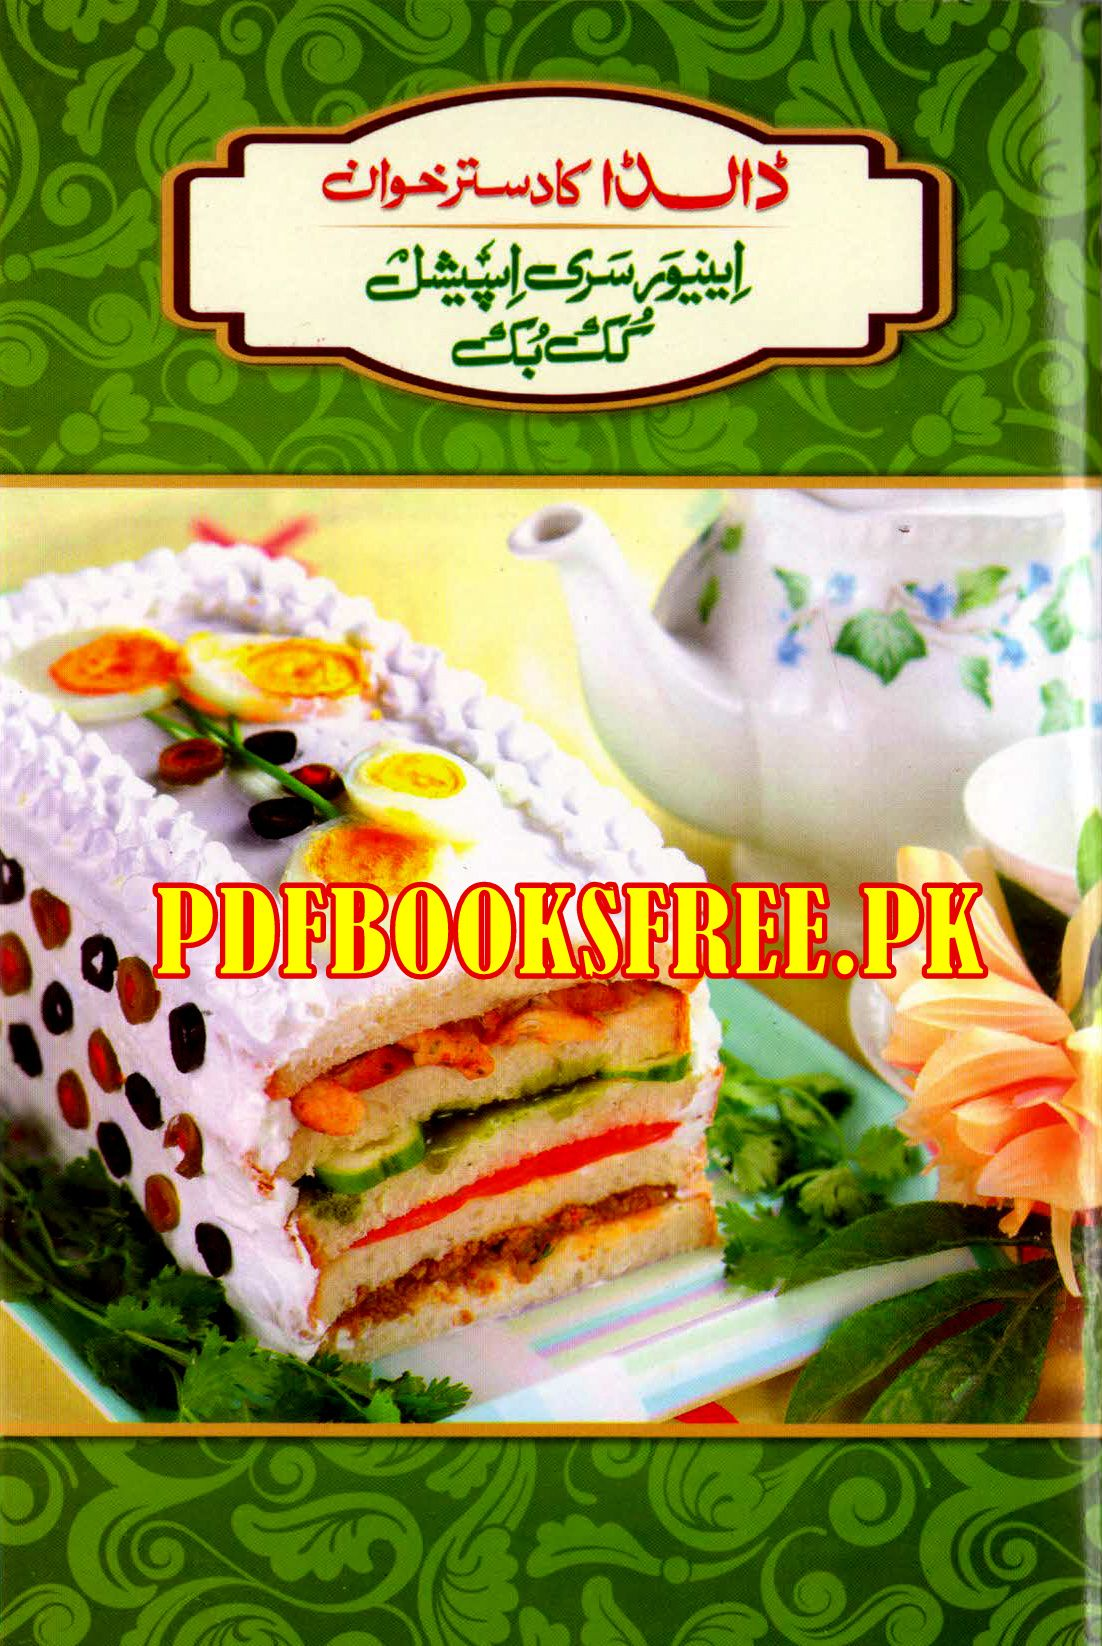 Dalda anniversary special cook book pdf free download urdu dalda anniversary special cook book pdf free download forumfinder Image collections